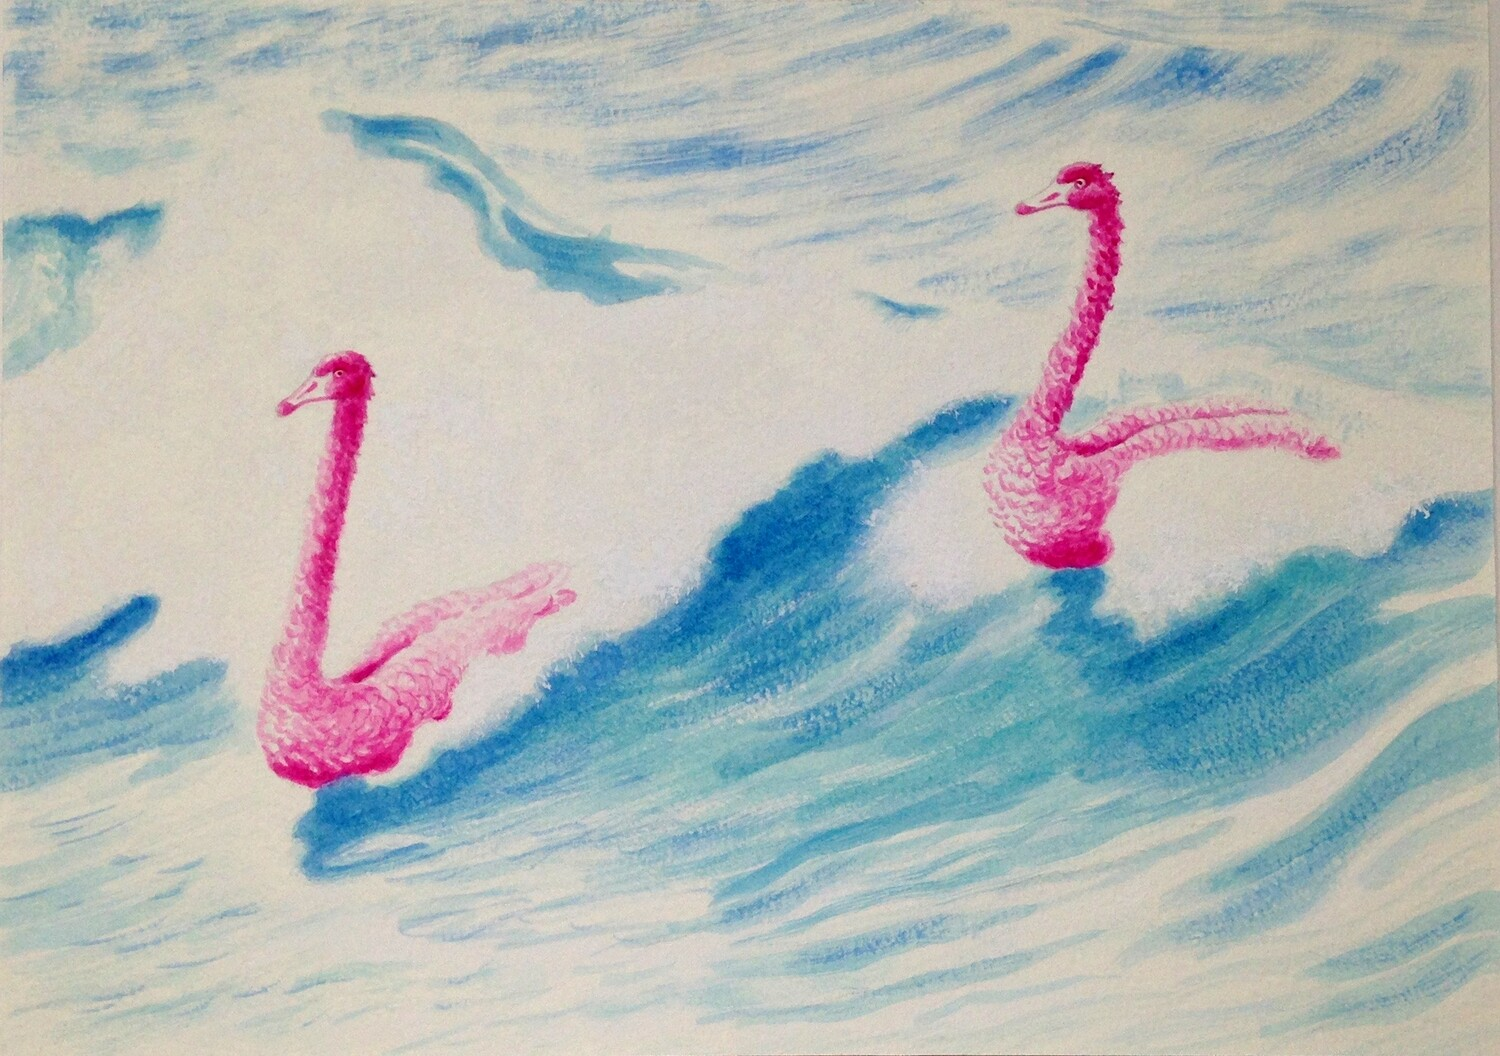 'Ruffled Feathers' from the watercolour series: Pink Swan Event'.